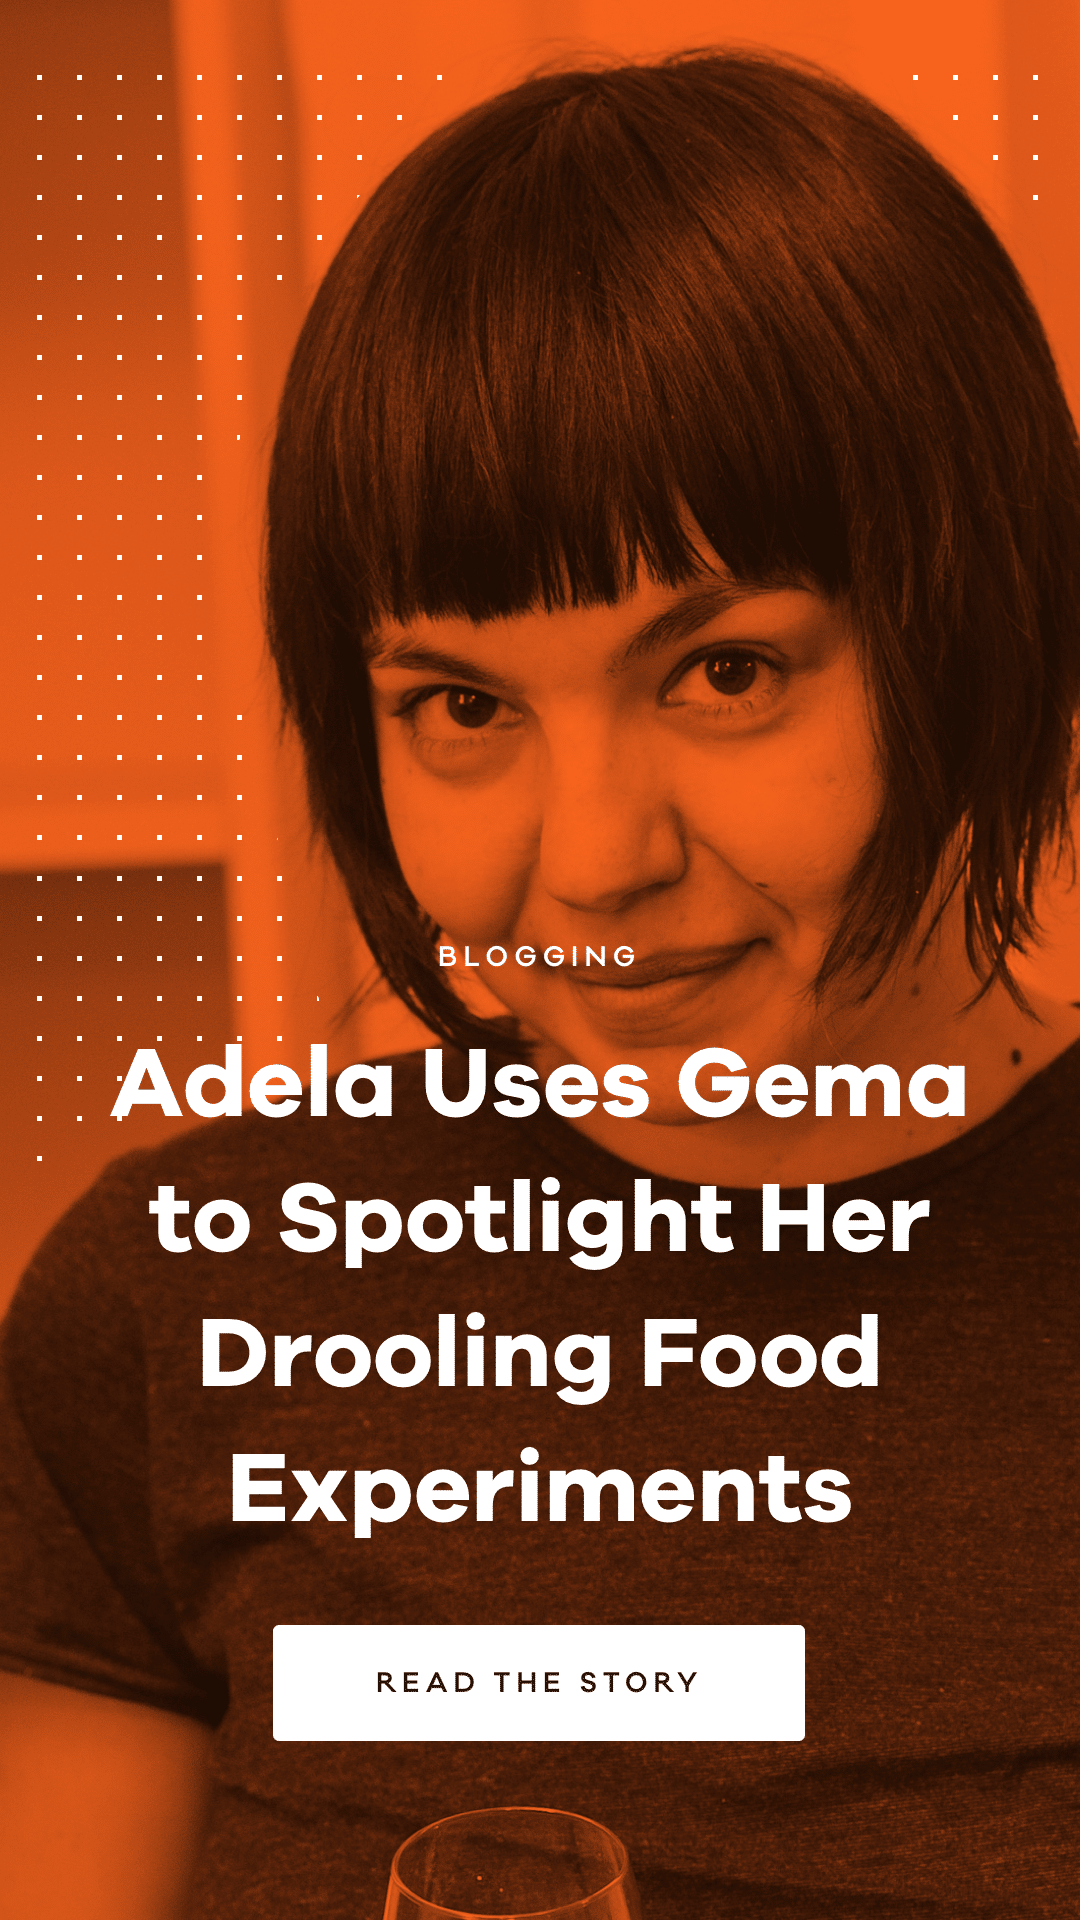 Adela is a Chief Experimentalist and Taster who uses Gema - Blogging WordPress Theme from Pixelgrade - to showcase her food stories and experiences.